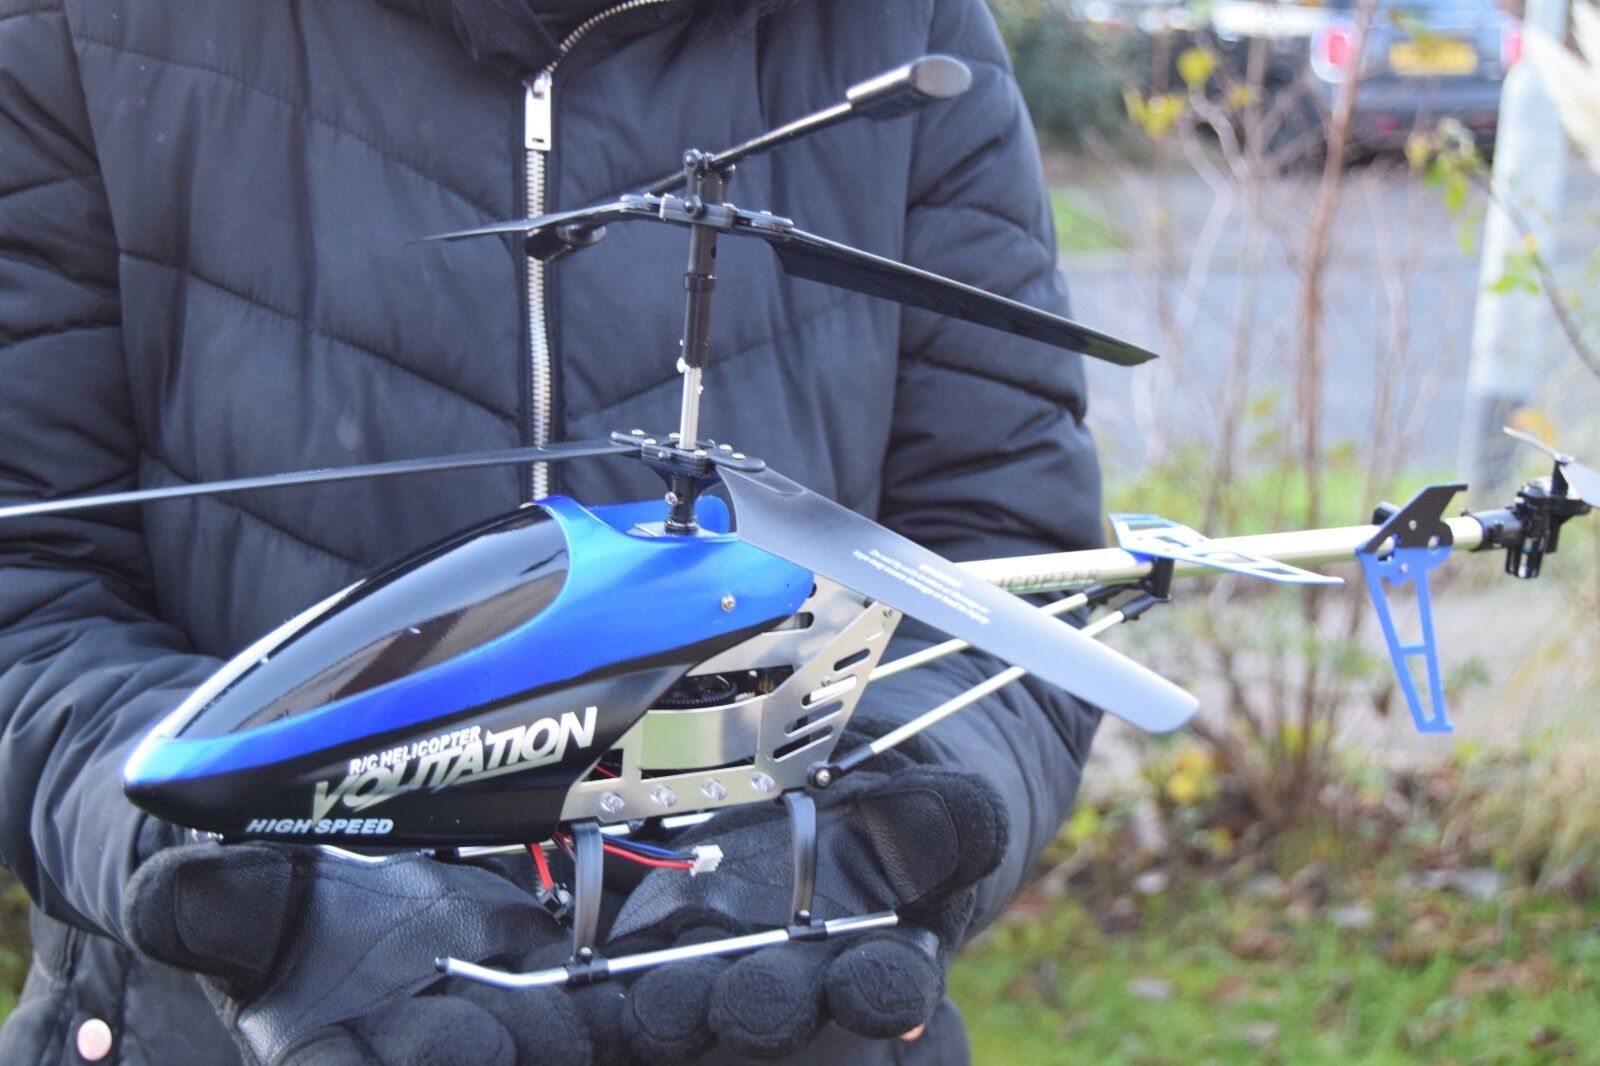 LARGE DOUBLE HORSE METAL FRAME GYROSCOPE VOLITATION ALLOY HELICOPTER 9053G